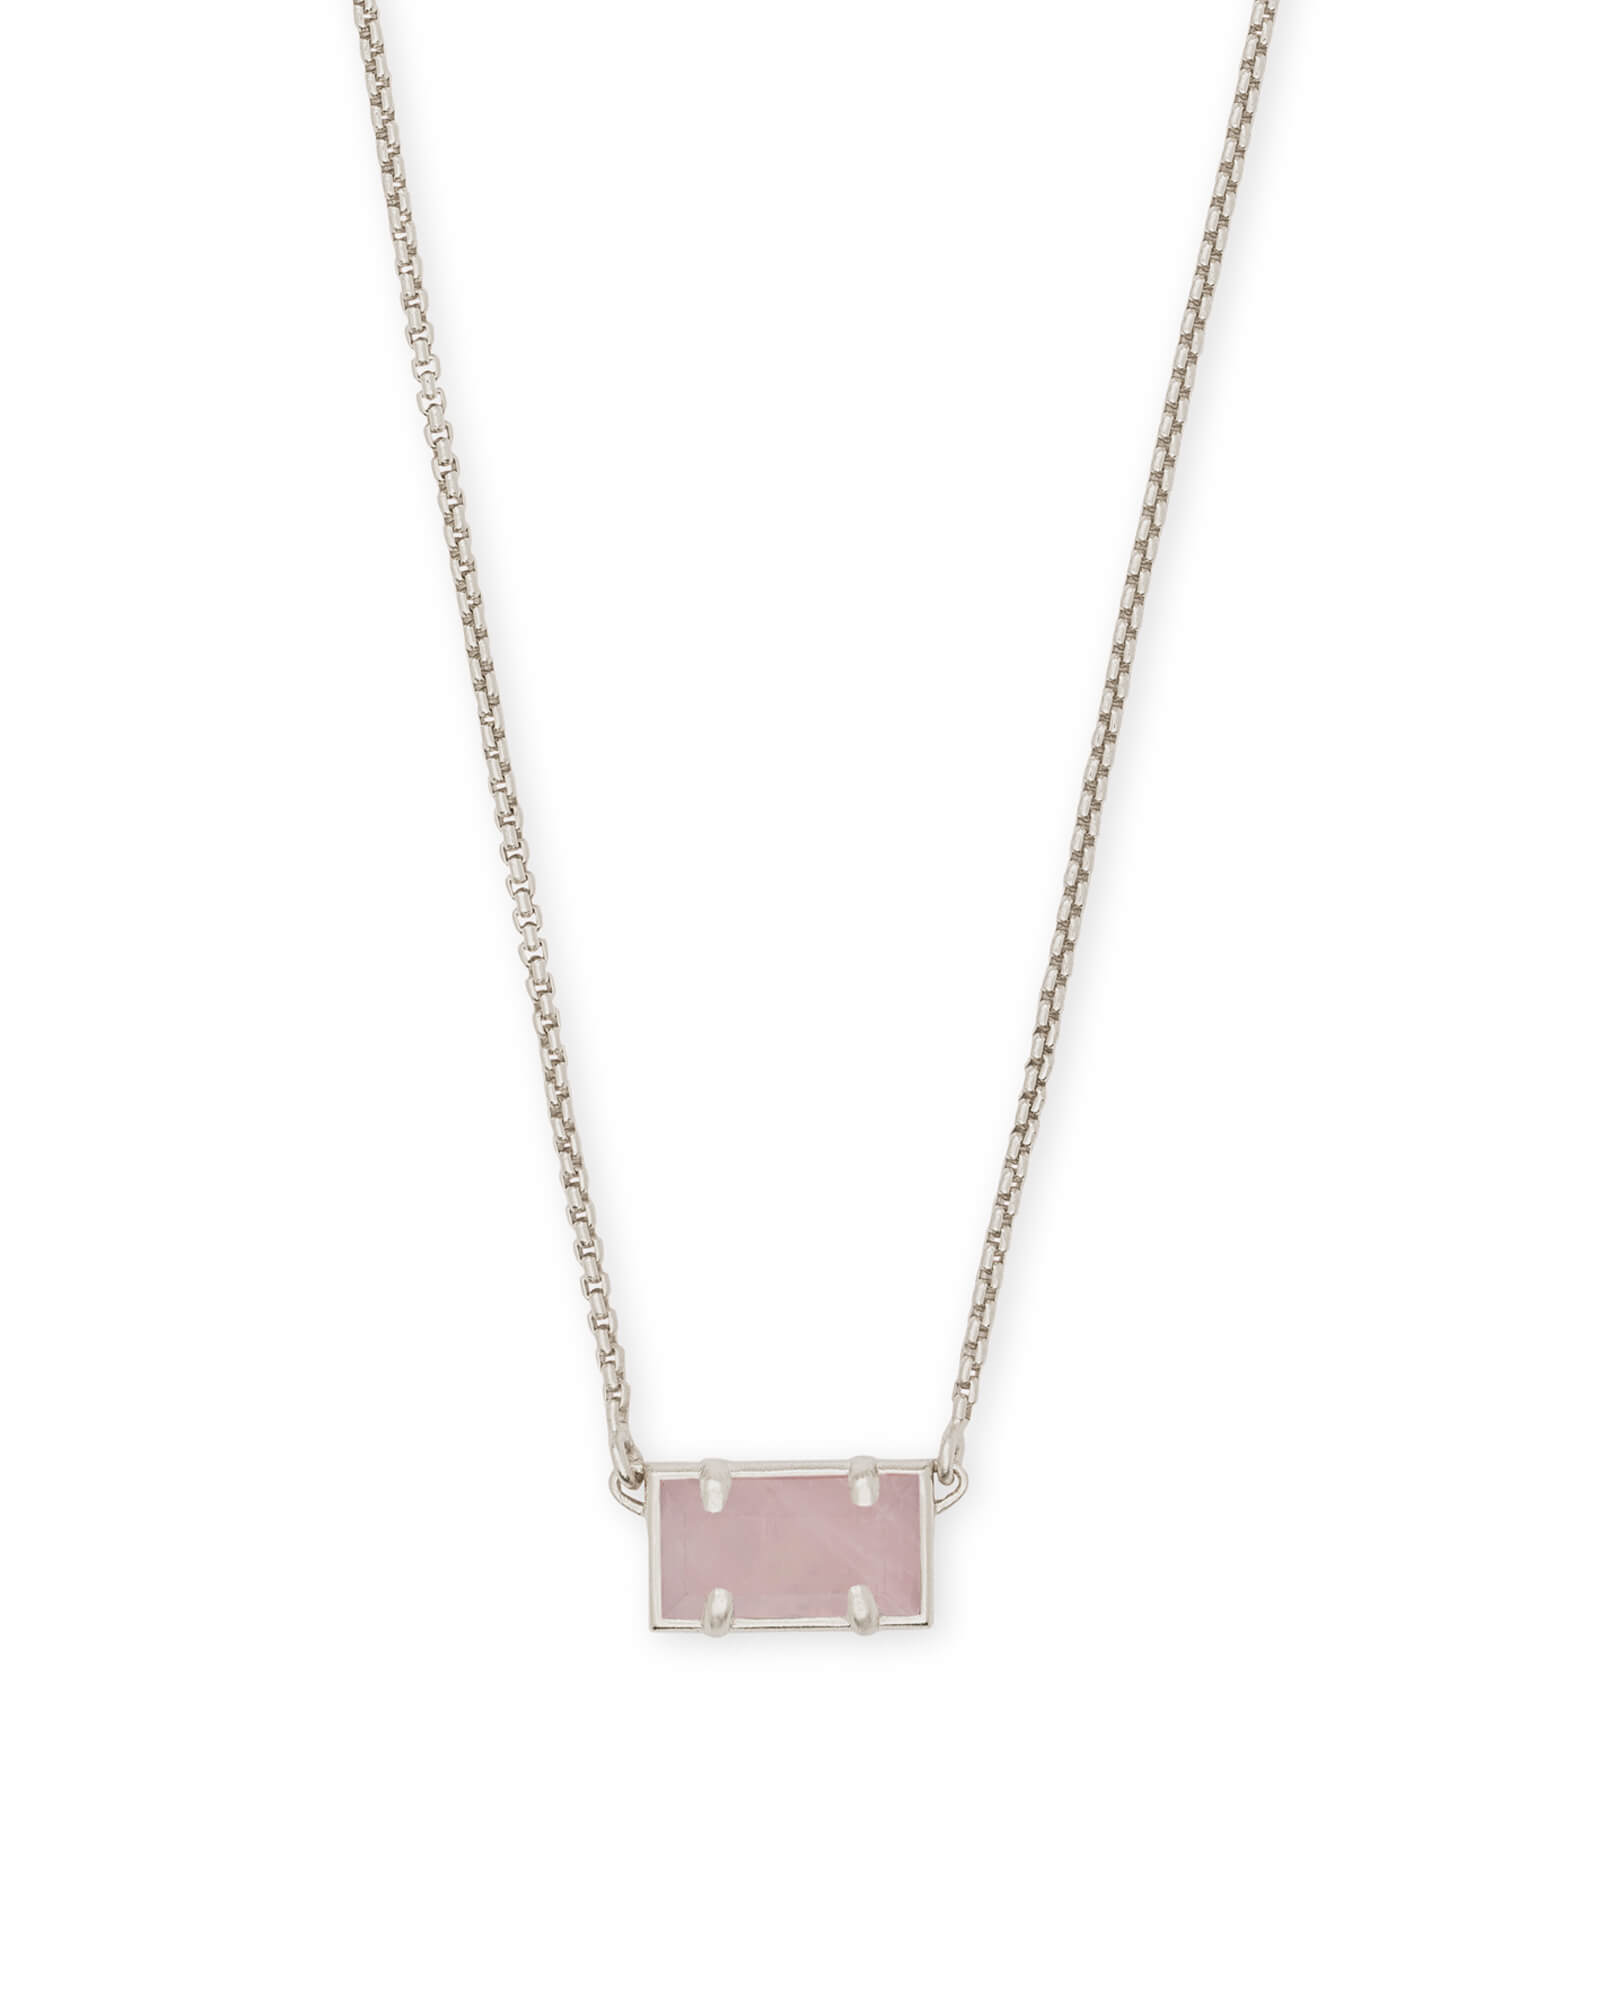 Pattie Silver Pendant Necklace In Rose Quartz